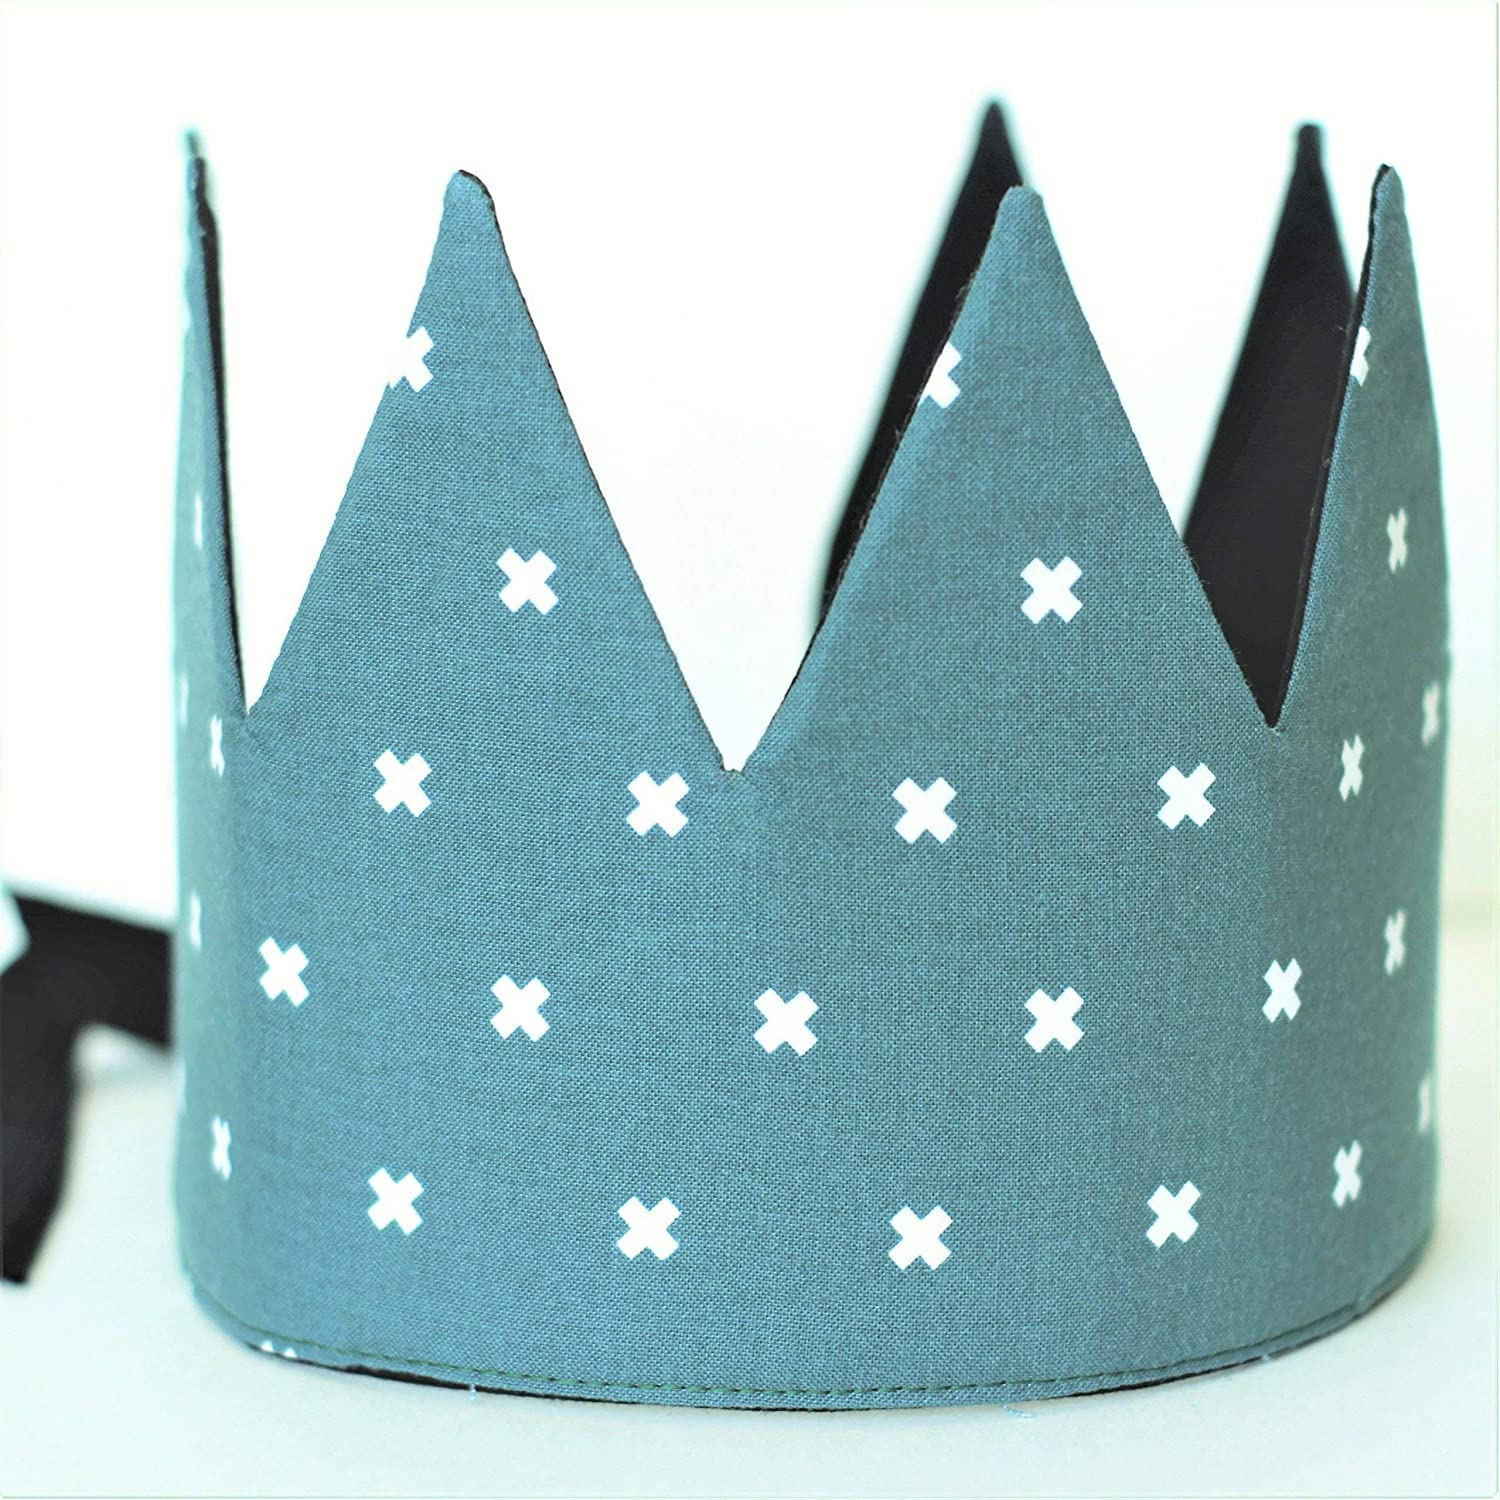 Children's Fabric crown Children' s Fabric crown